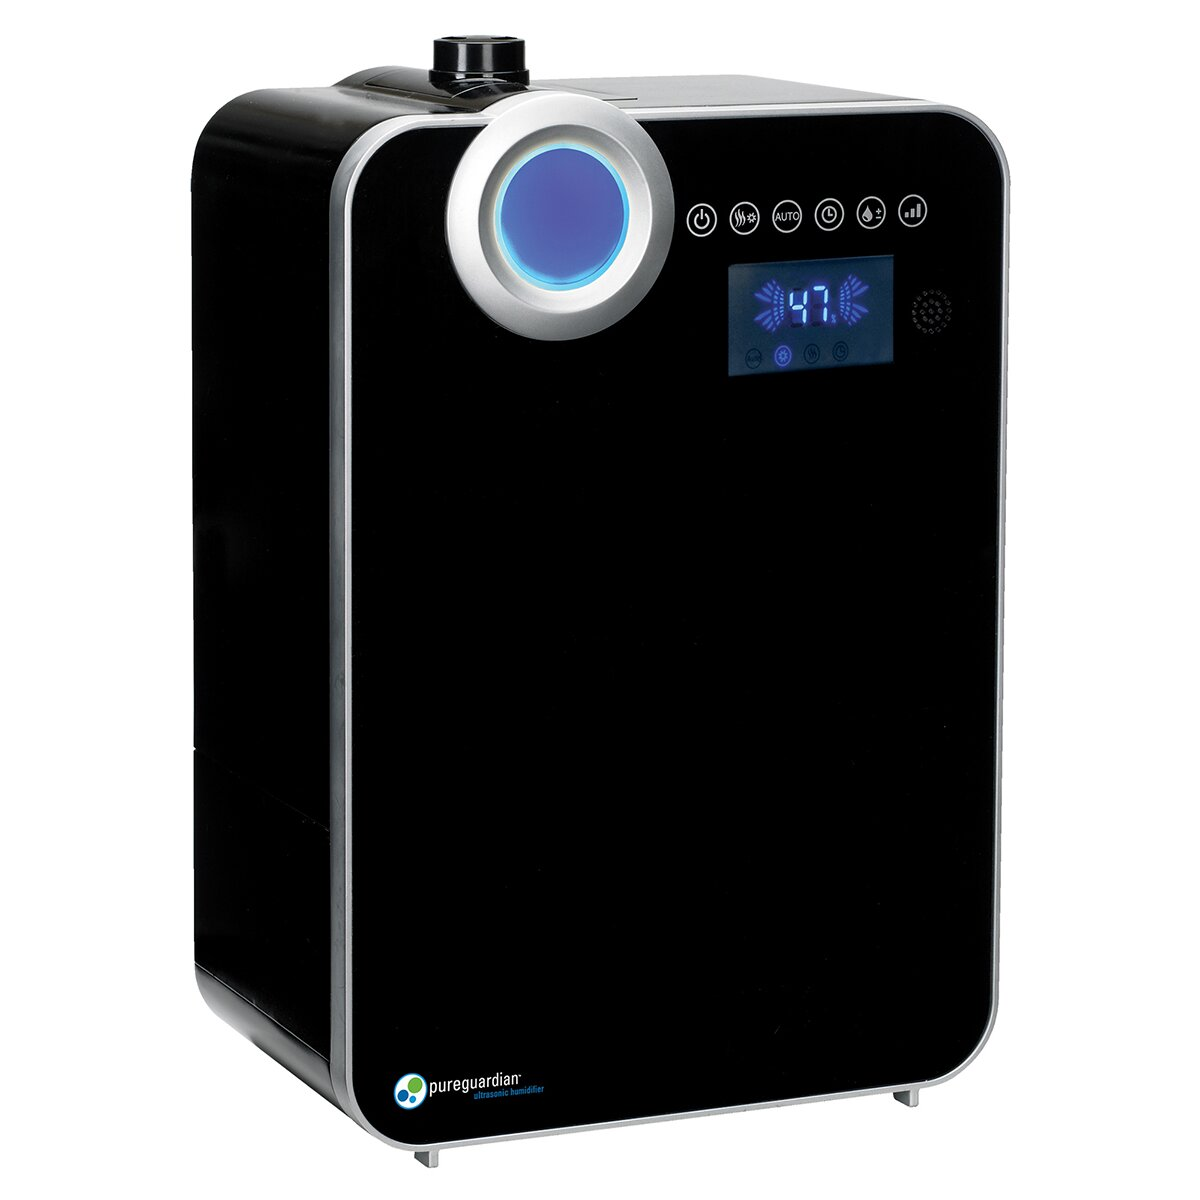 The Pureguardian 120 Hour Elite Smart Cool Warm Mist Share The  #1288B9